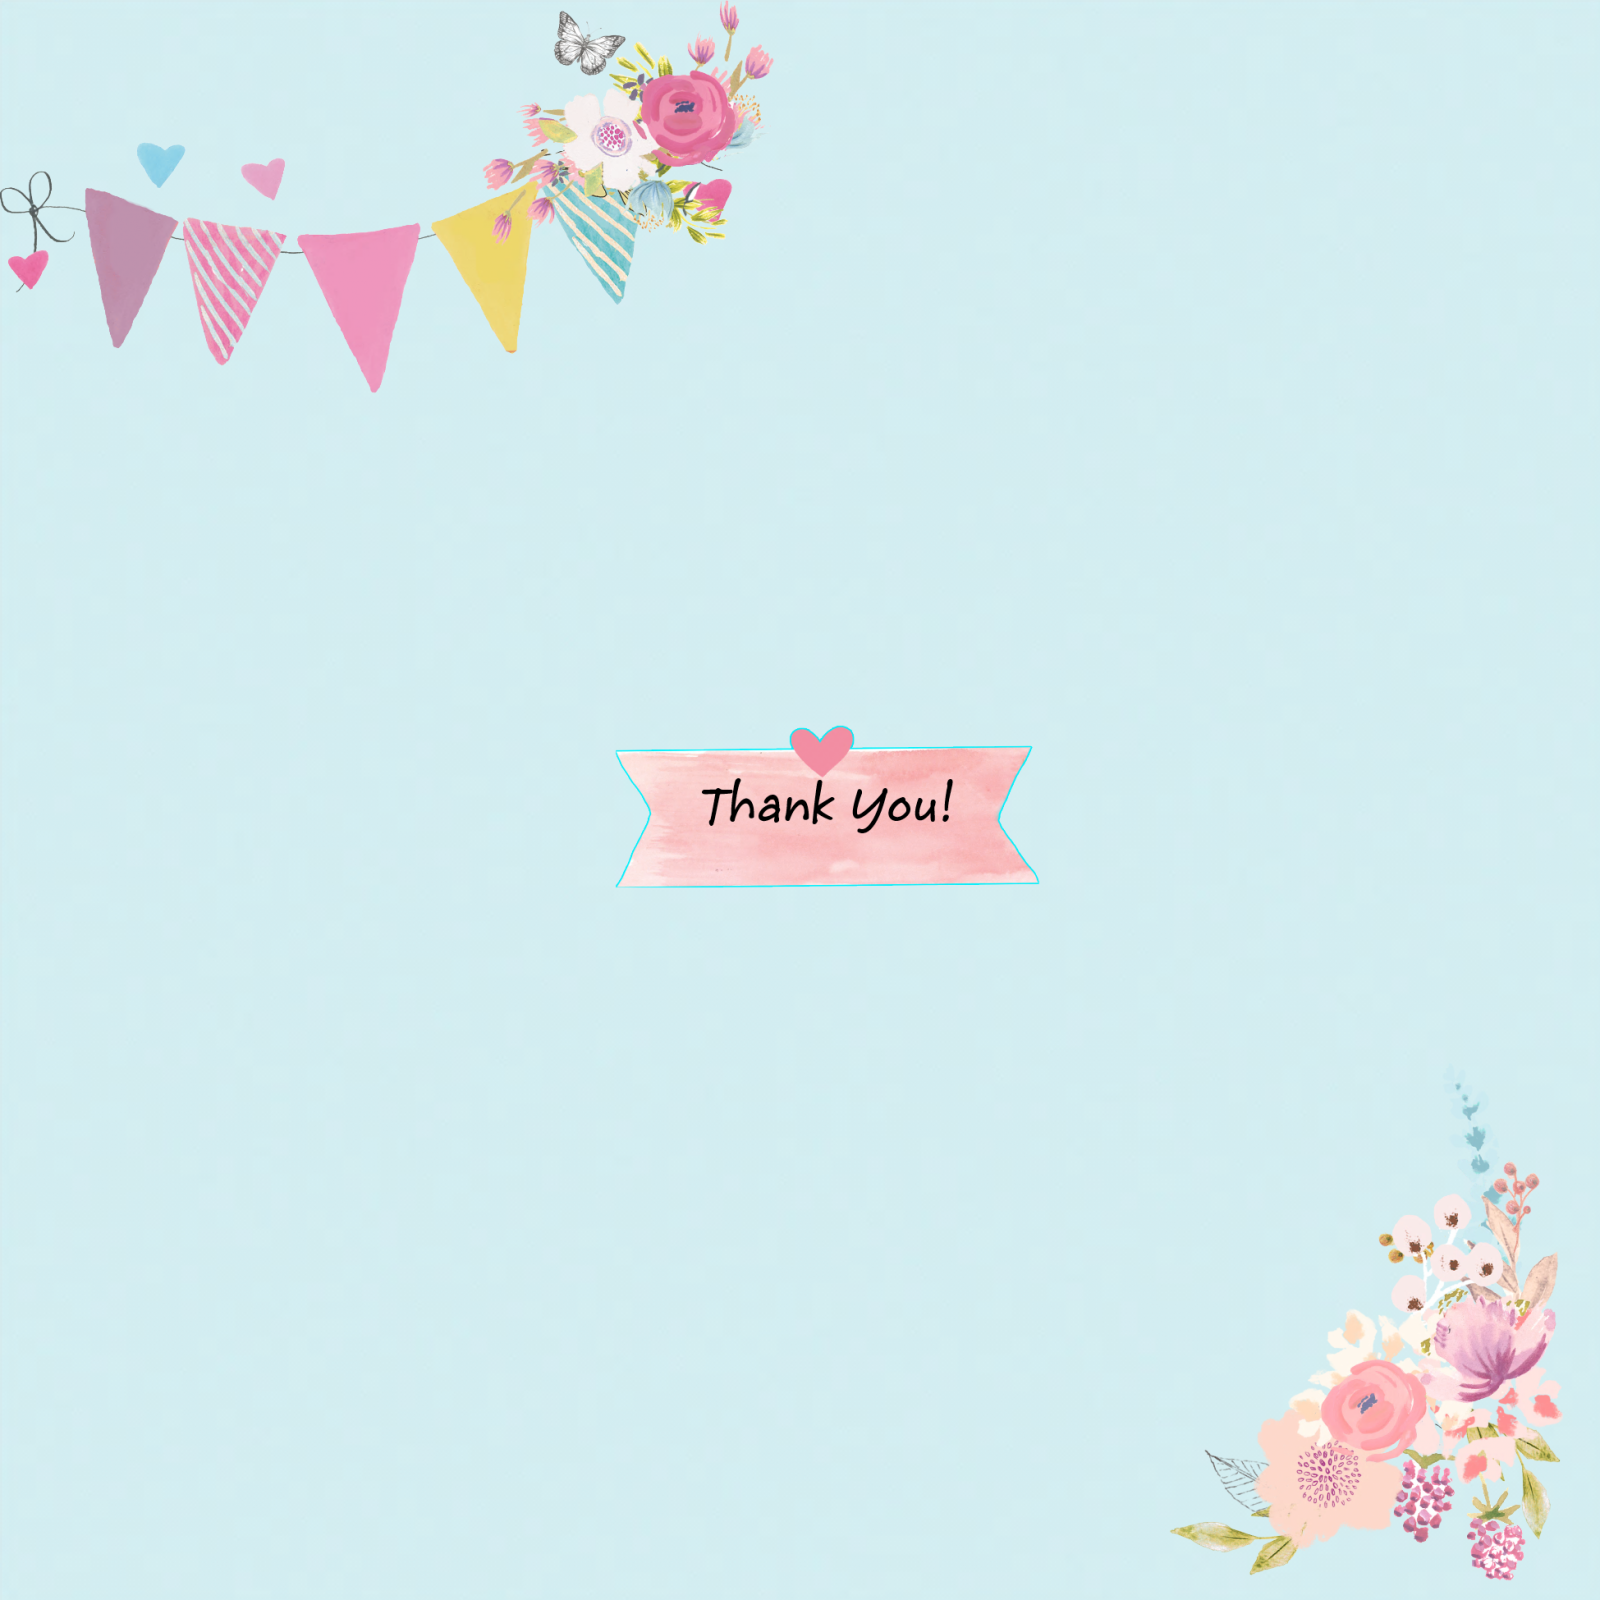 Living Creatively with Fibro | An image of the insert saying thank you on a label there is bunting at the top and flowers at the bottom that match the front of the card